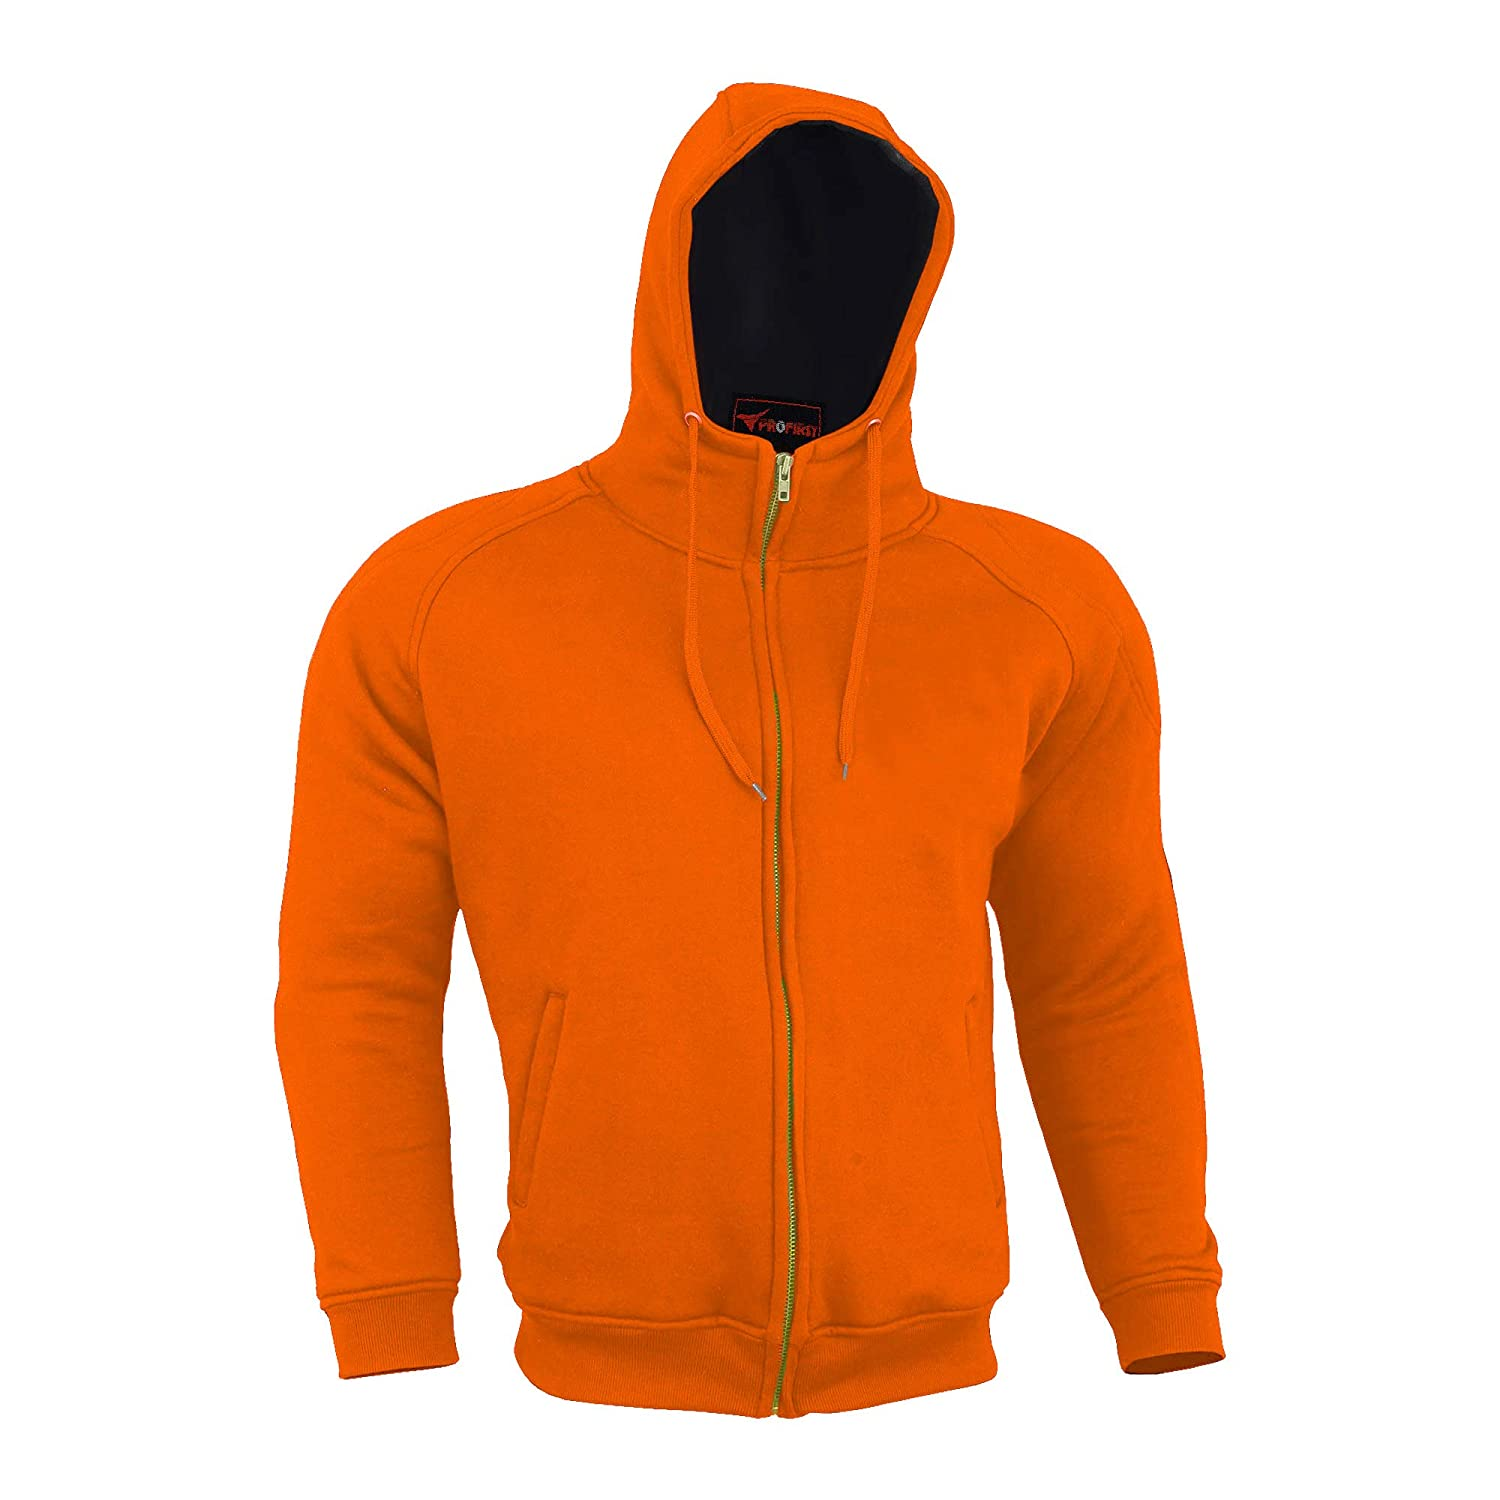 Armoured Hoodie Motorcycle Motorbike Summer Hoody Jacket Zip Up Removable Armor Bikers Orange Size = Medium